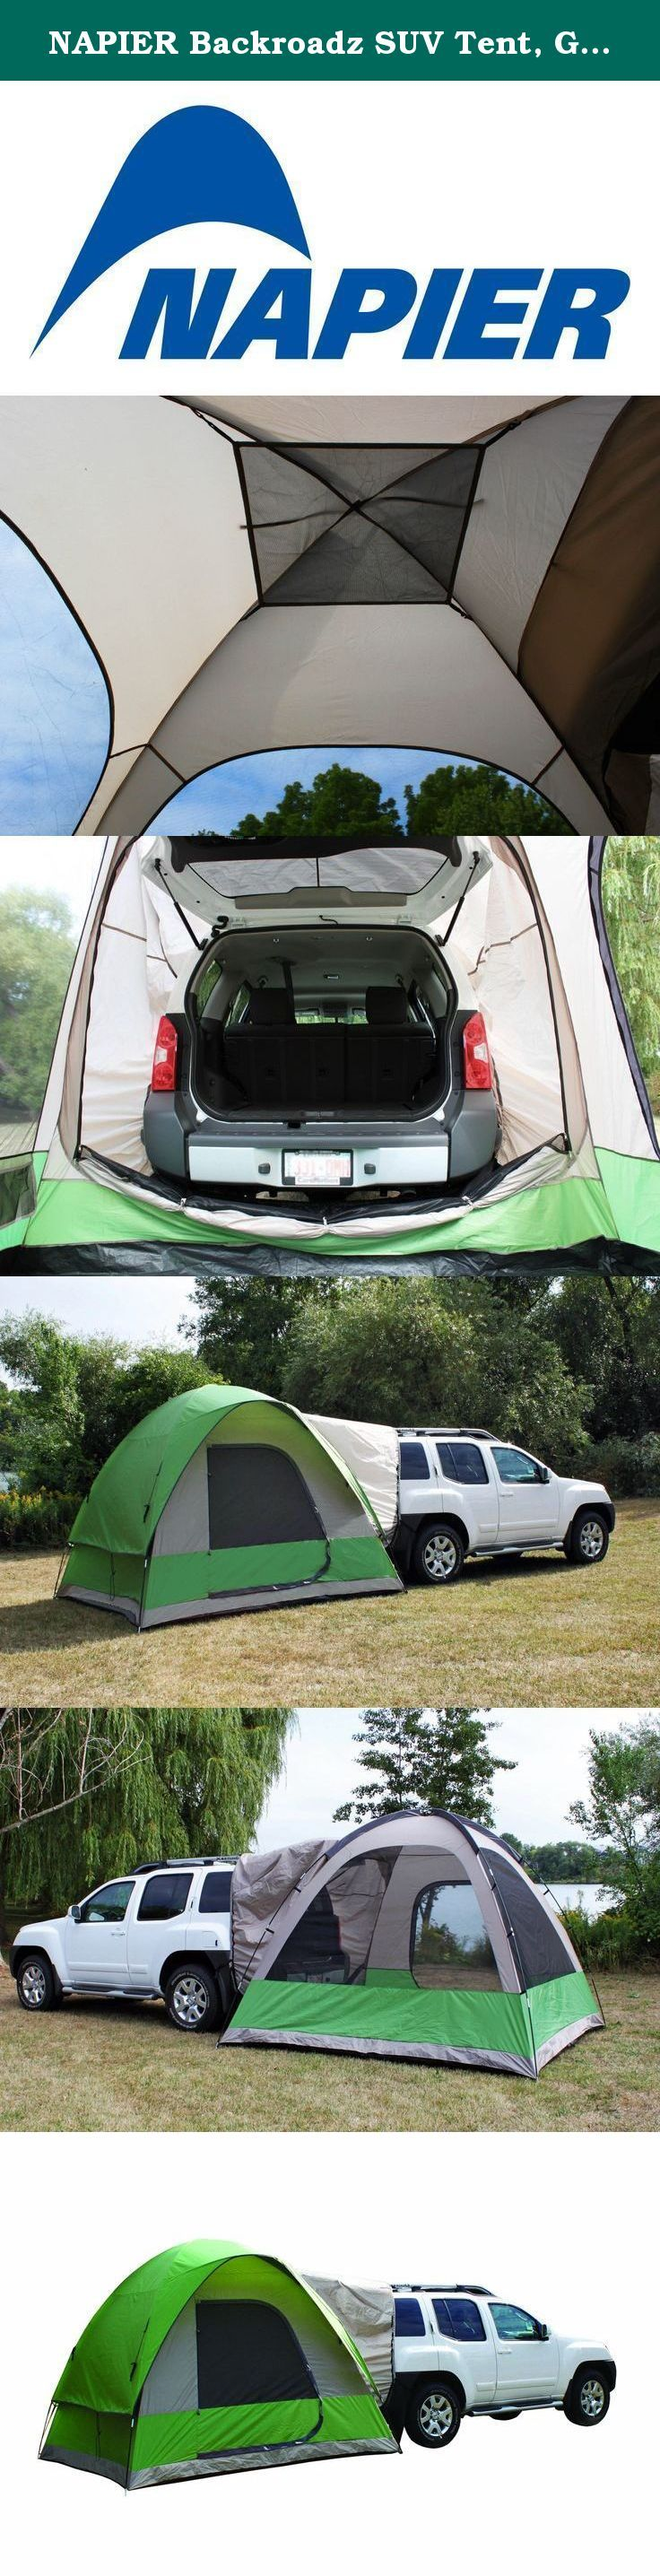 NAPIER Backroadz SUV Tent Green/Beige/Grey. The Backroadz SUV Tent quickly transforms your SUV or Minivan into a comfortable home away from home. & NAPIER Backroadz SUV Tent Green/Beige/Grey. The Backroadz SUV ...